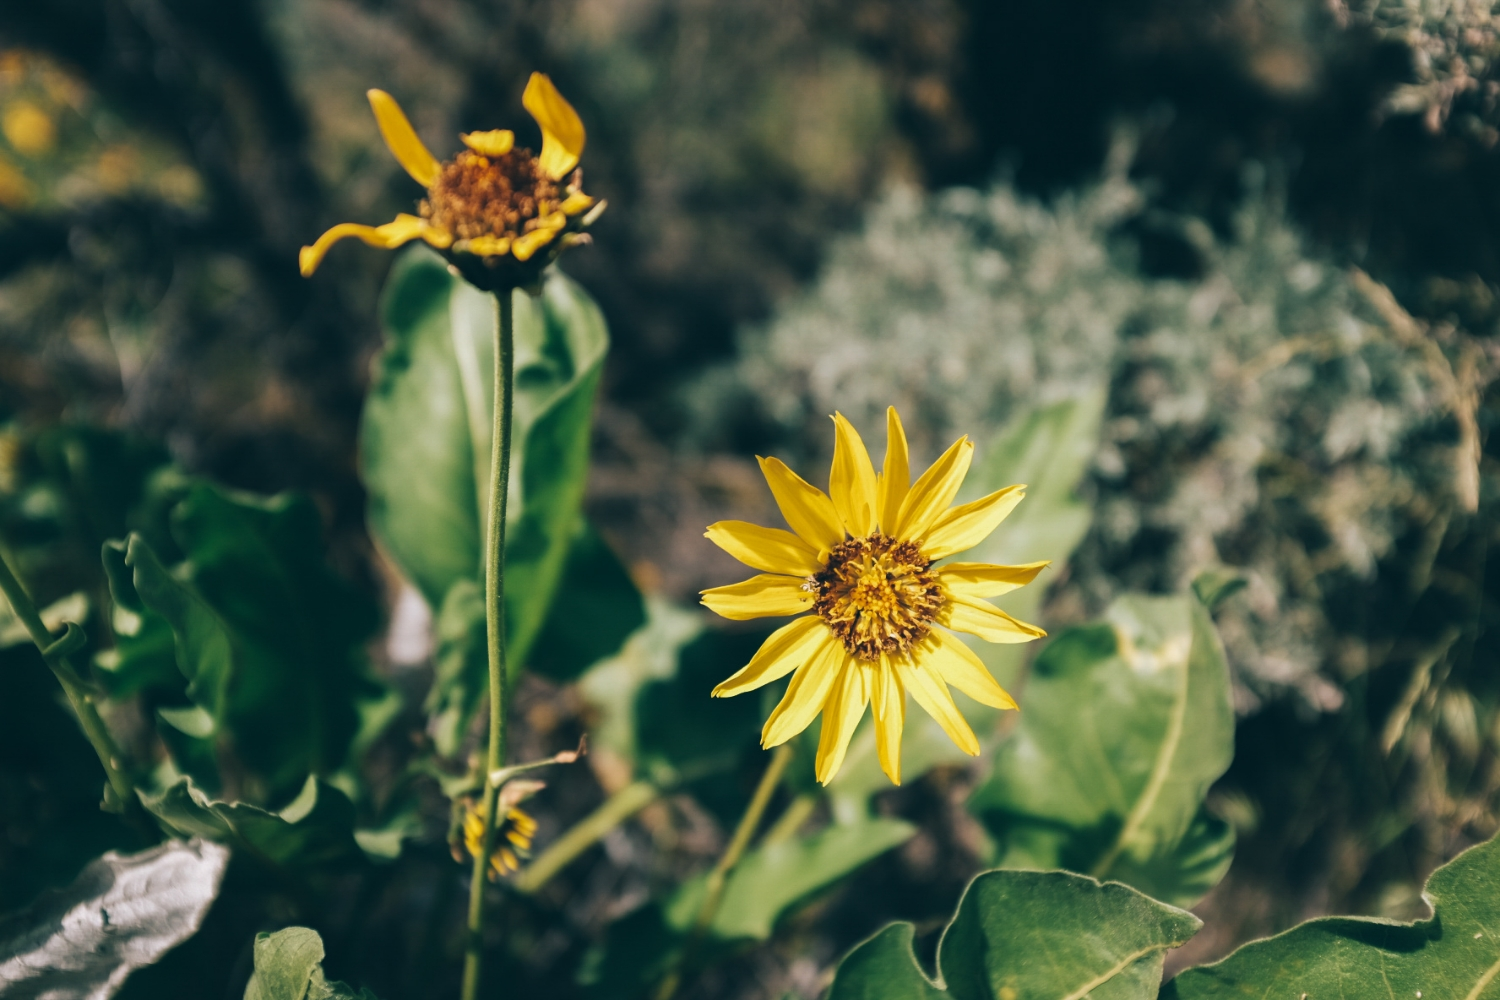 Arrowleaf Balsamroot, or the Okanagan sunflower. It's everywhere in the Spring.